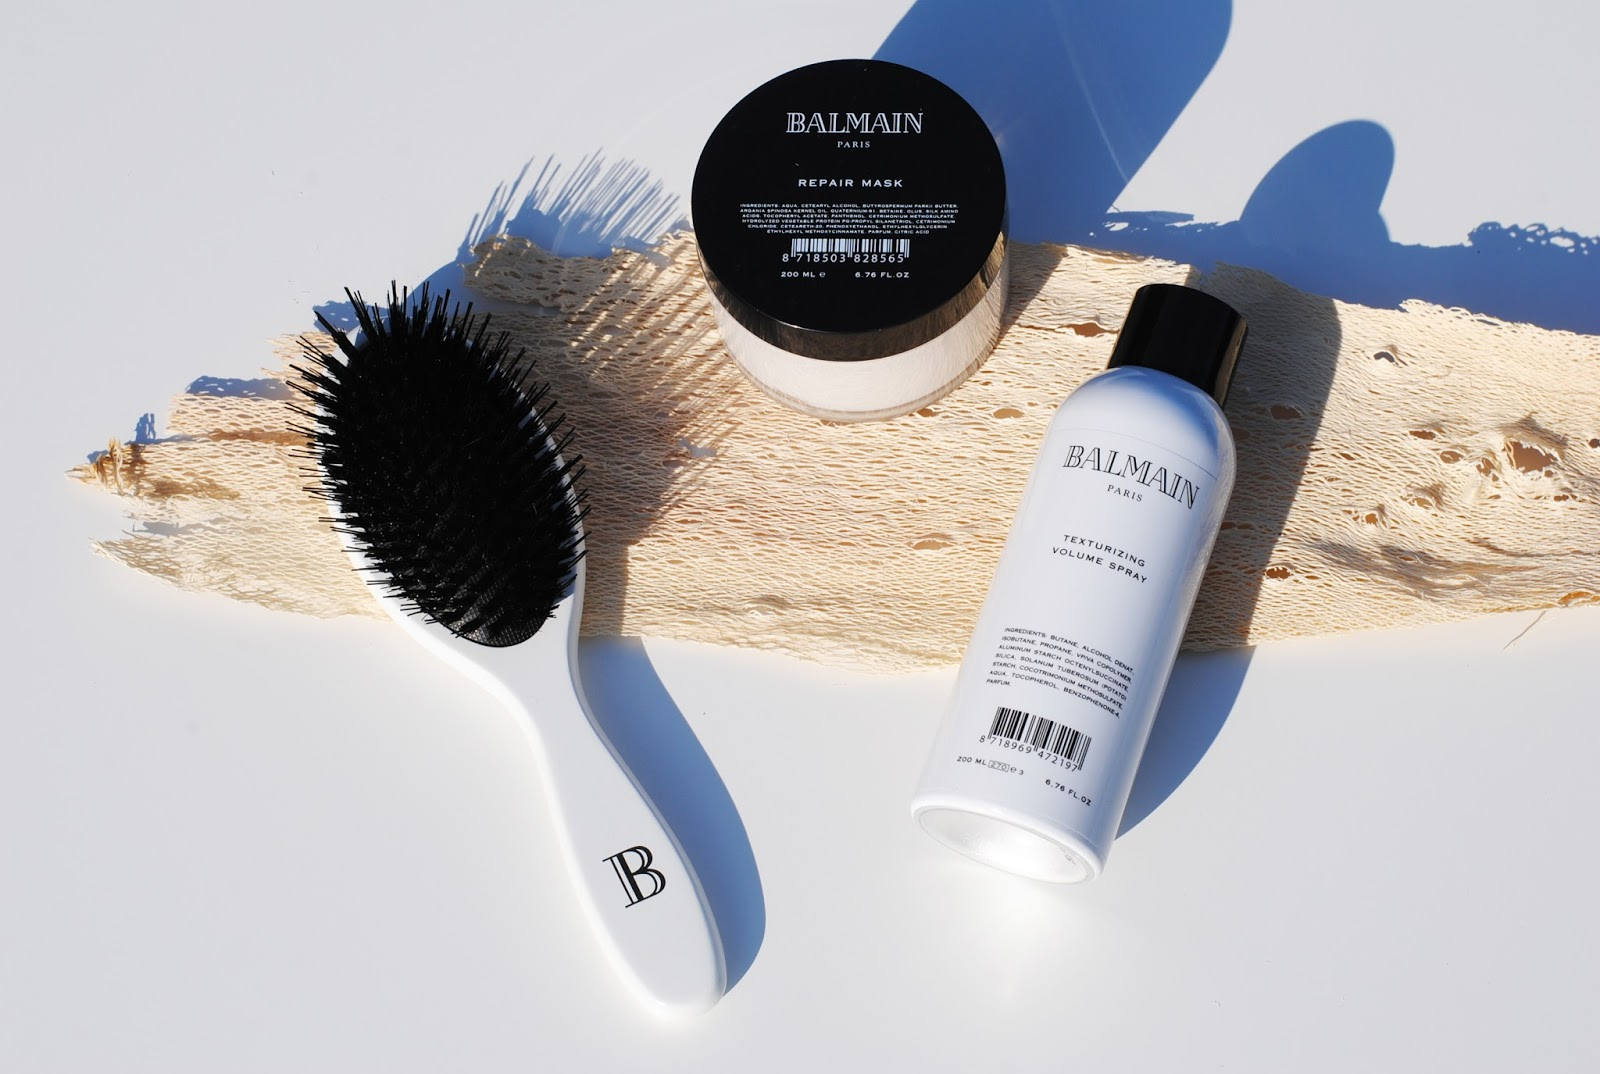 I Am A Fashioneer Balmain Brush Mask Spray